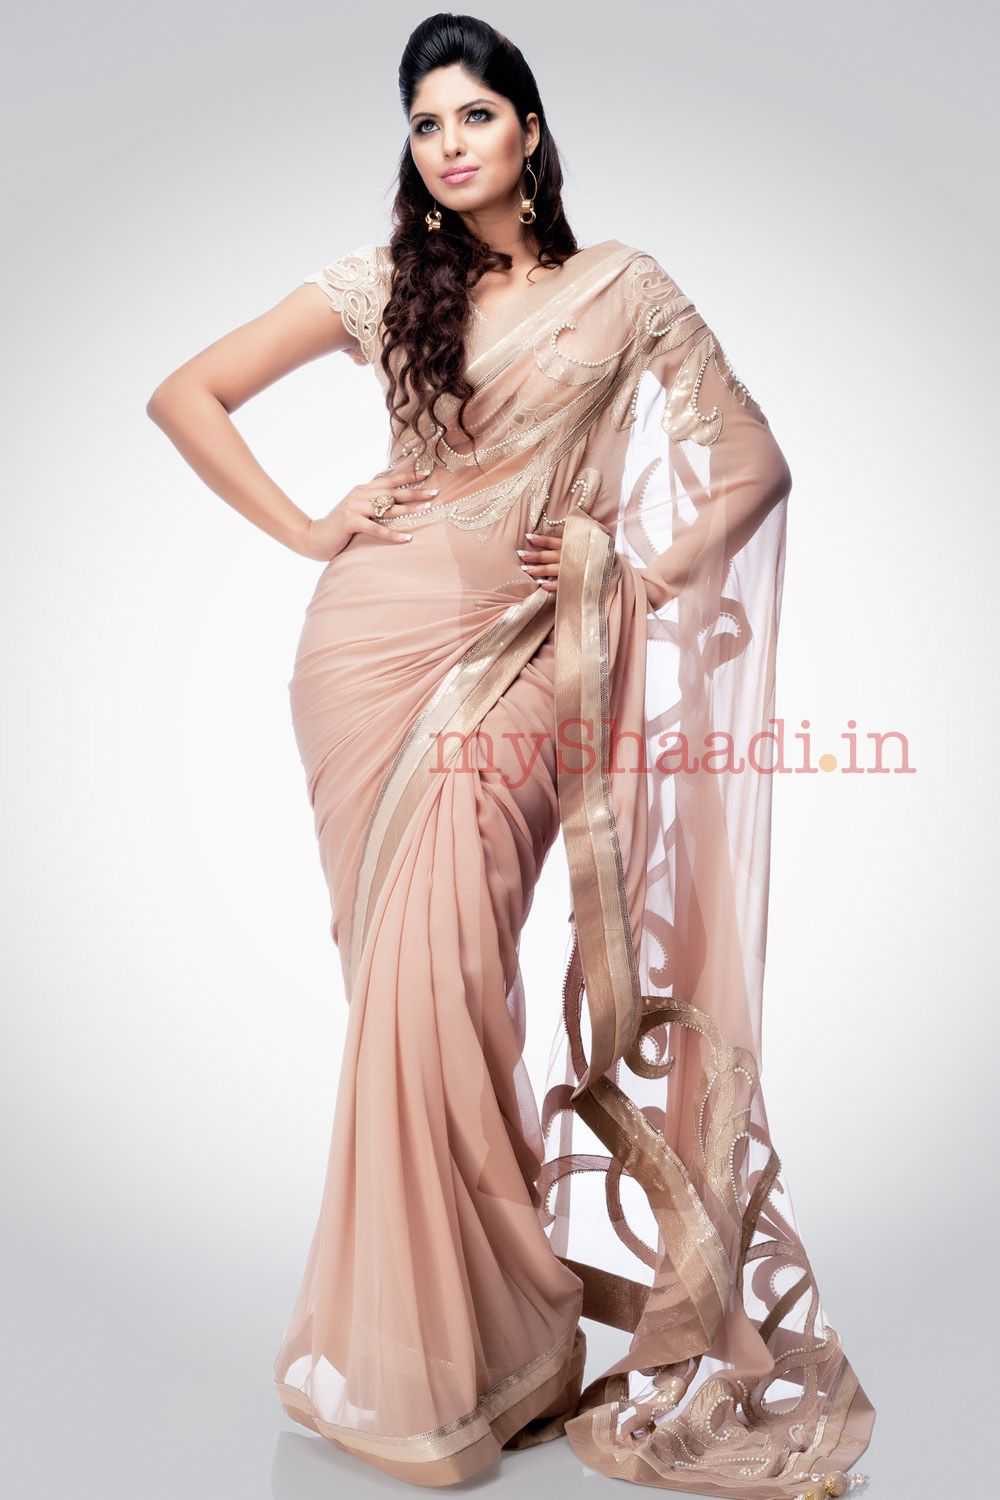 Nude Sari...Love it! by Satya Paul | kk | Pinterest